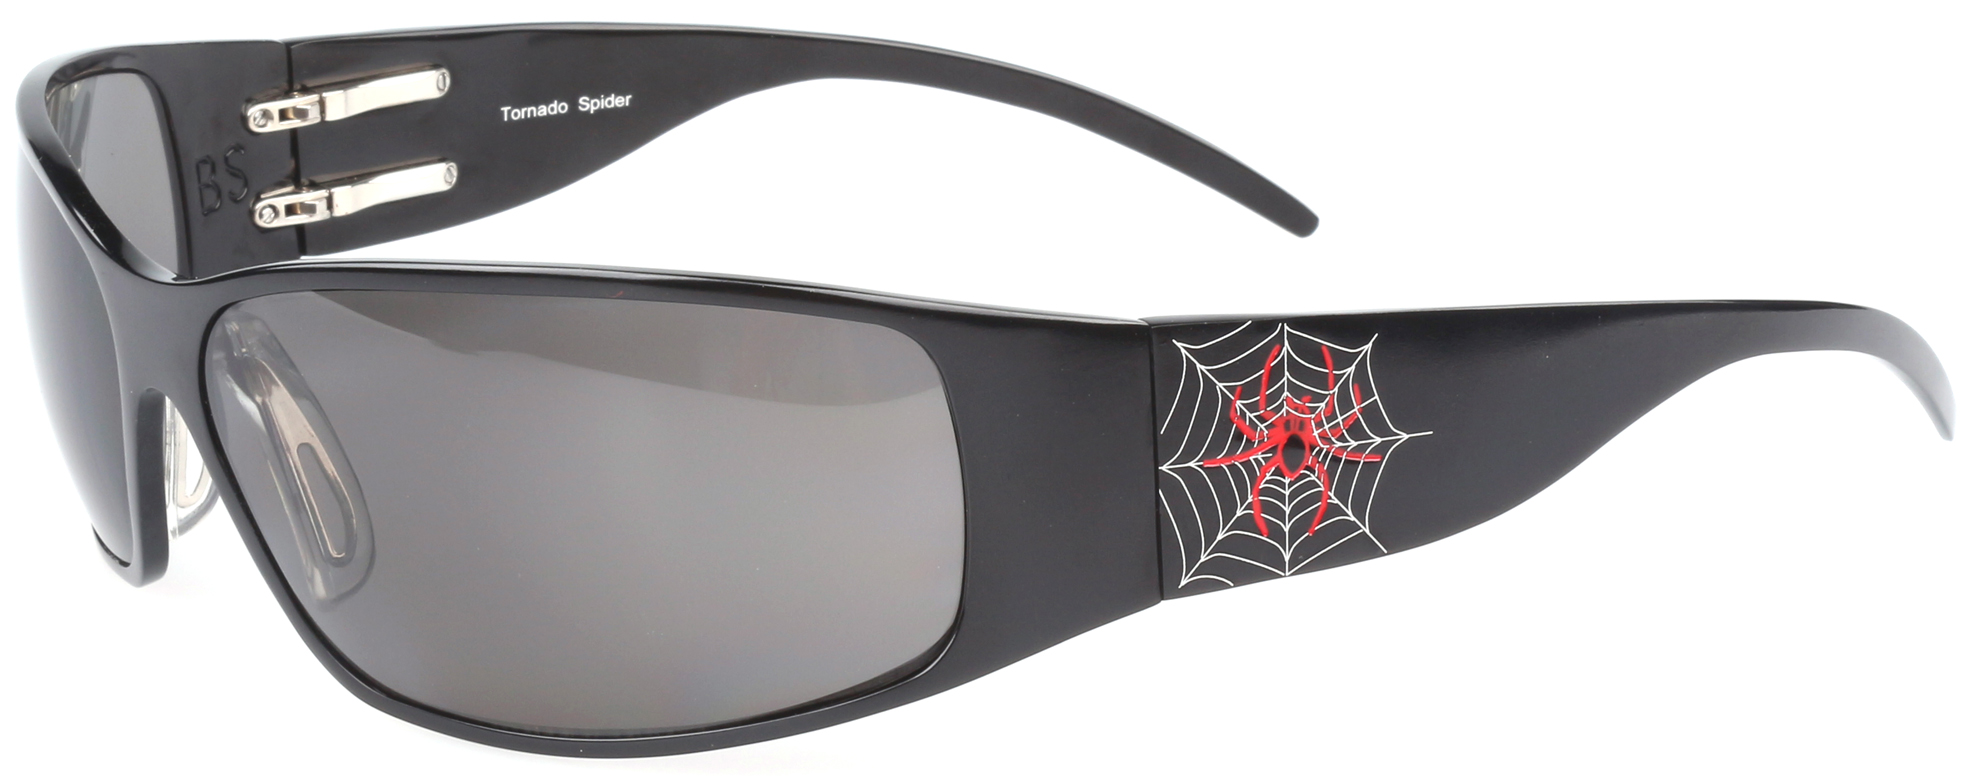 OutLaw Eyewear Tornado Spider Aluminum MetalSunglass for Motorcycle riding